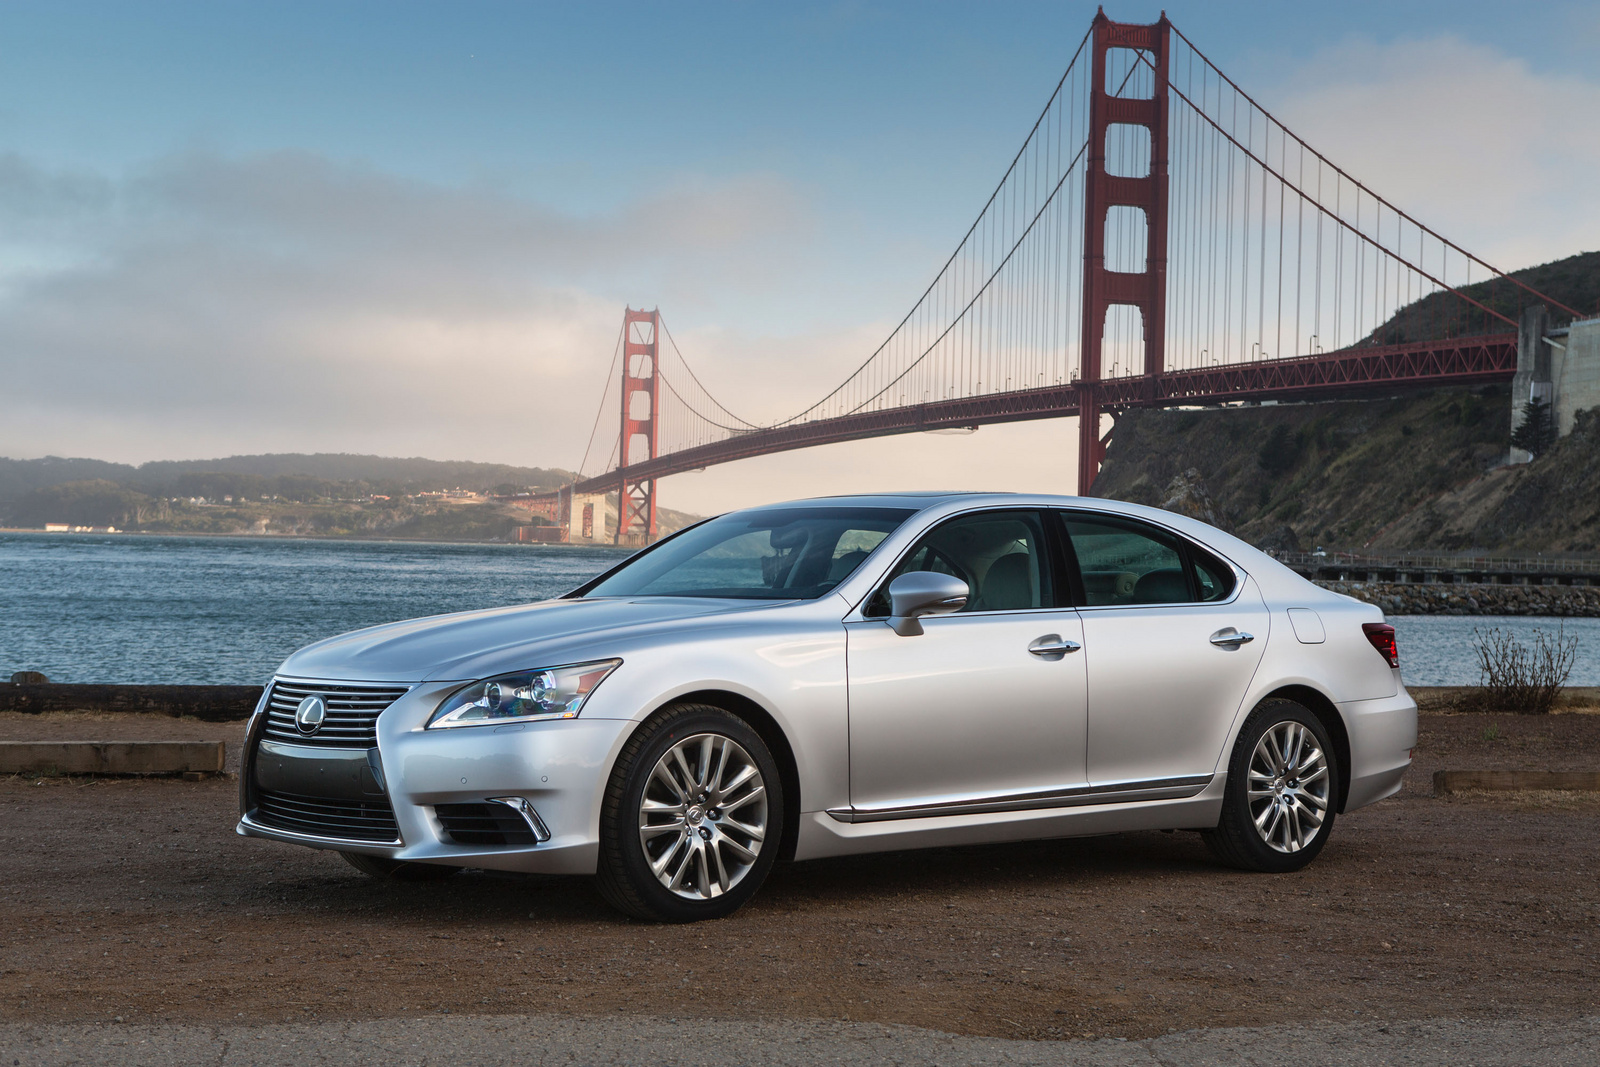 2017 Lexus LS460 AWD photo - 4